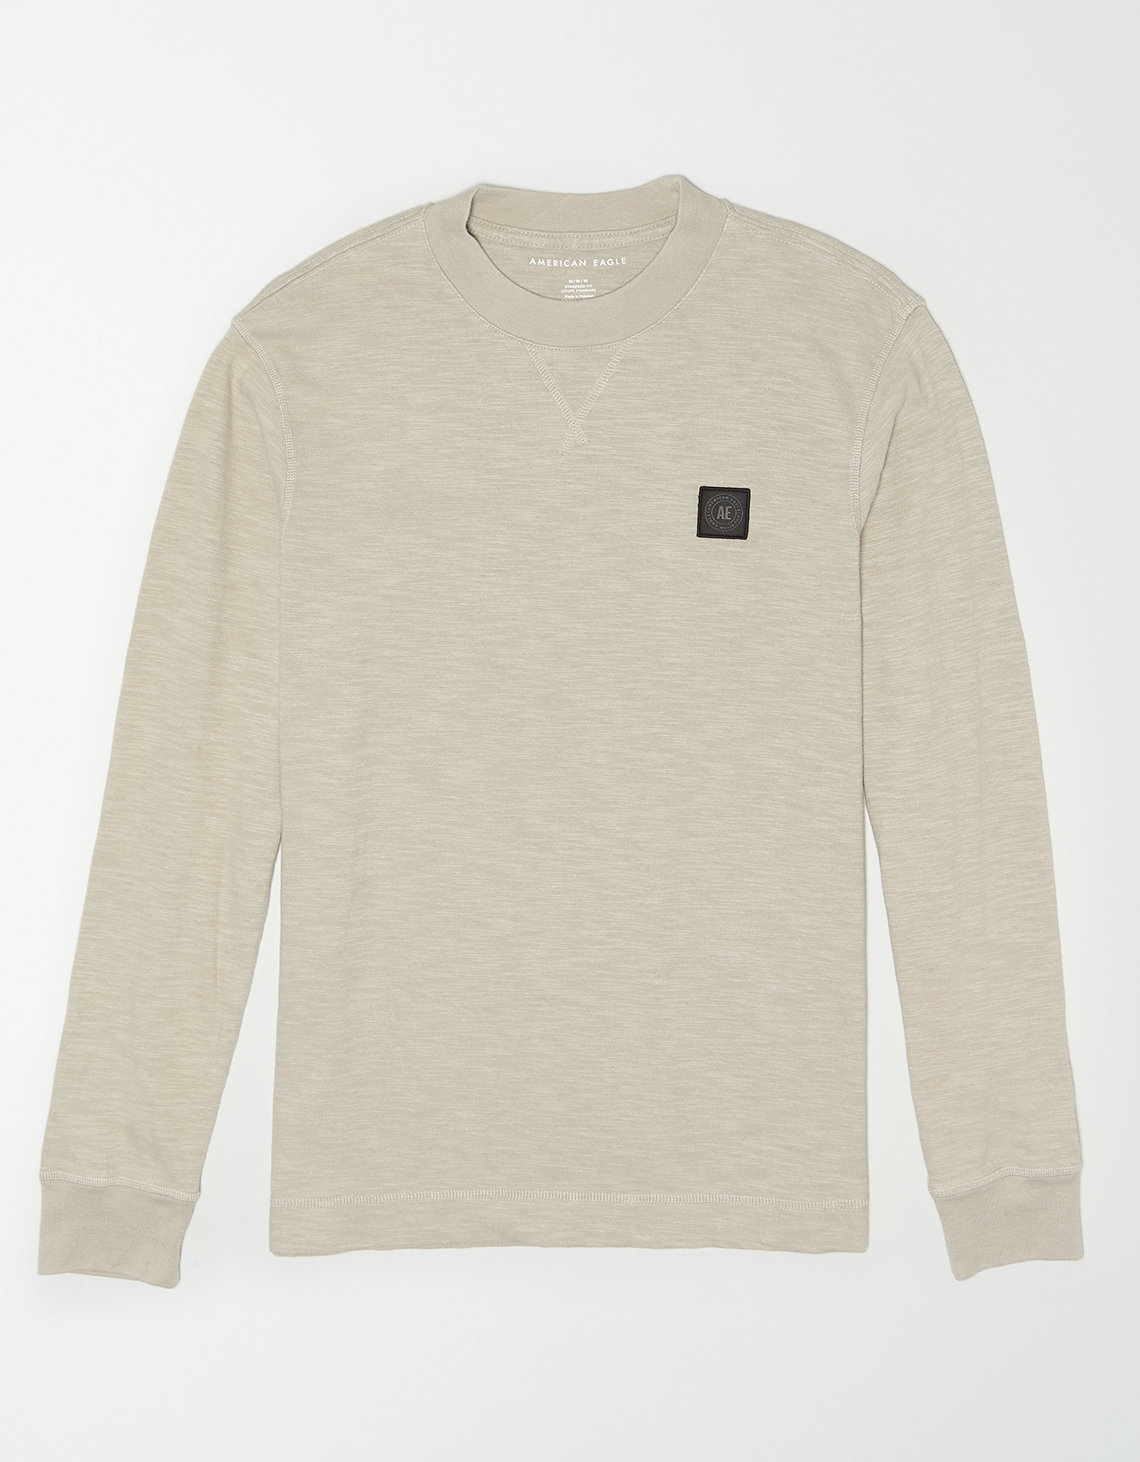 AE Long Sleeve Slub Workwear T-Shirt